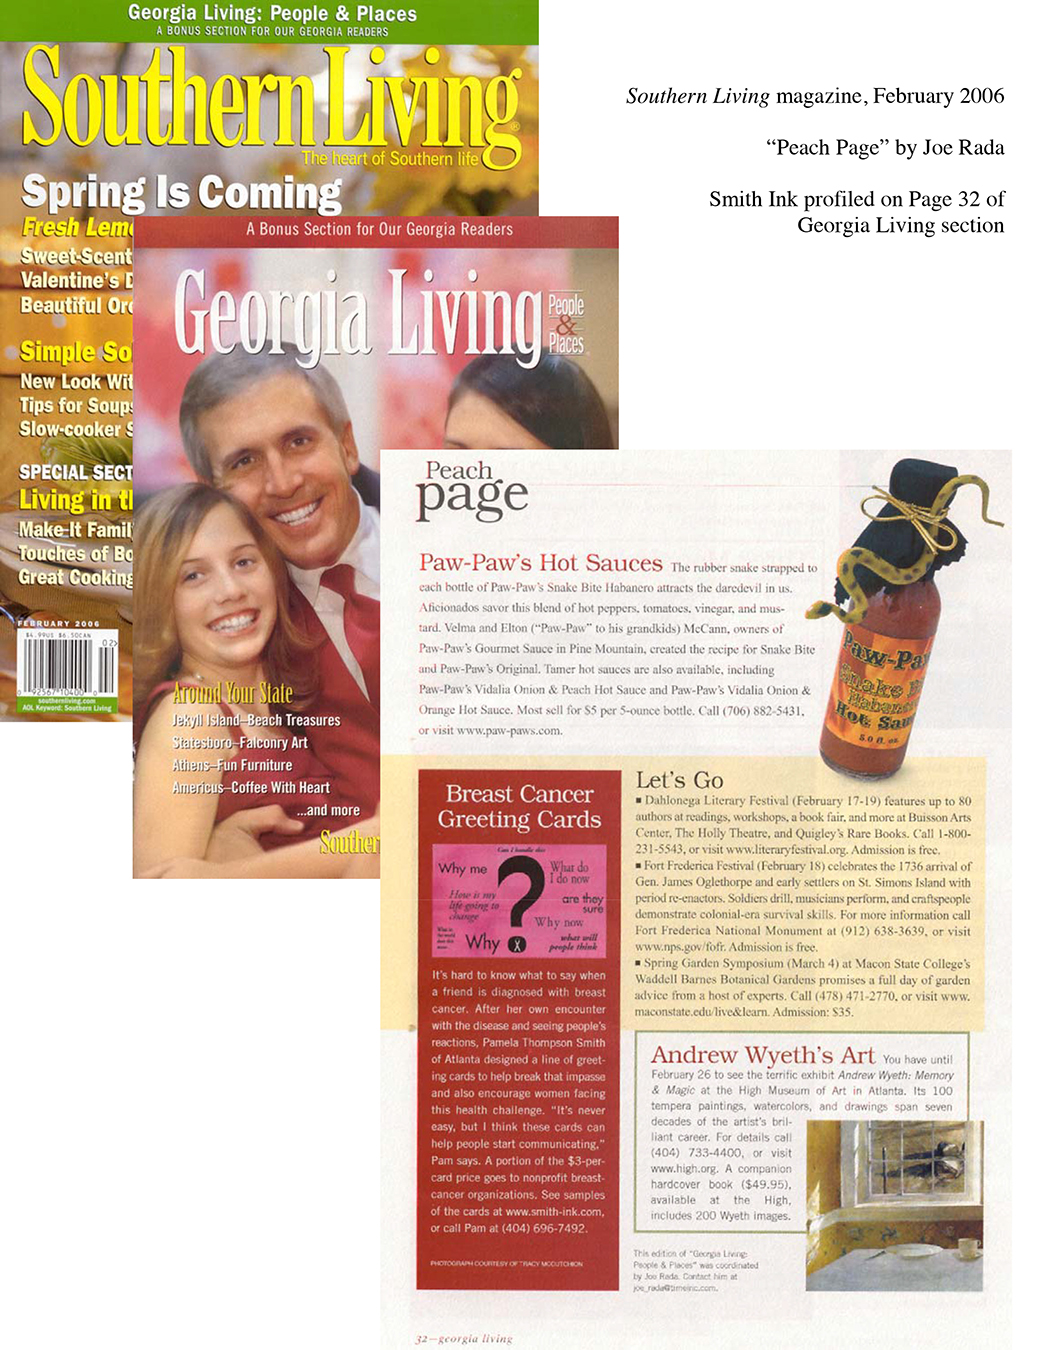 Southern Living Magazine Article about Pamela Smith, Smith Ink, LLC